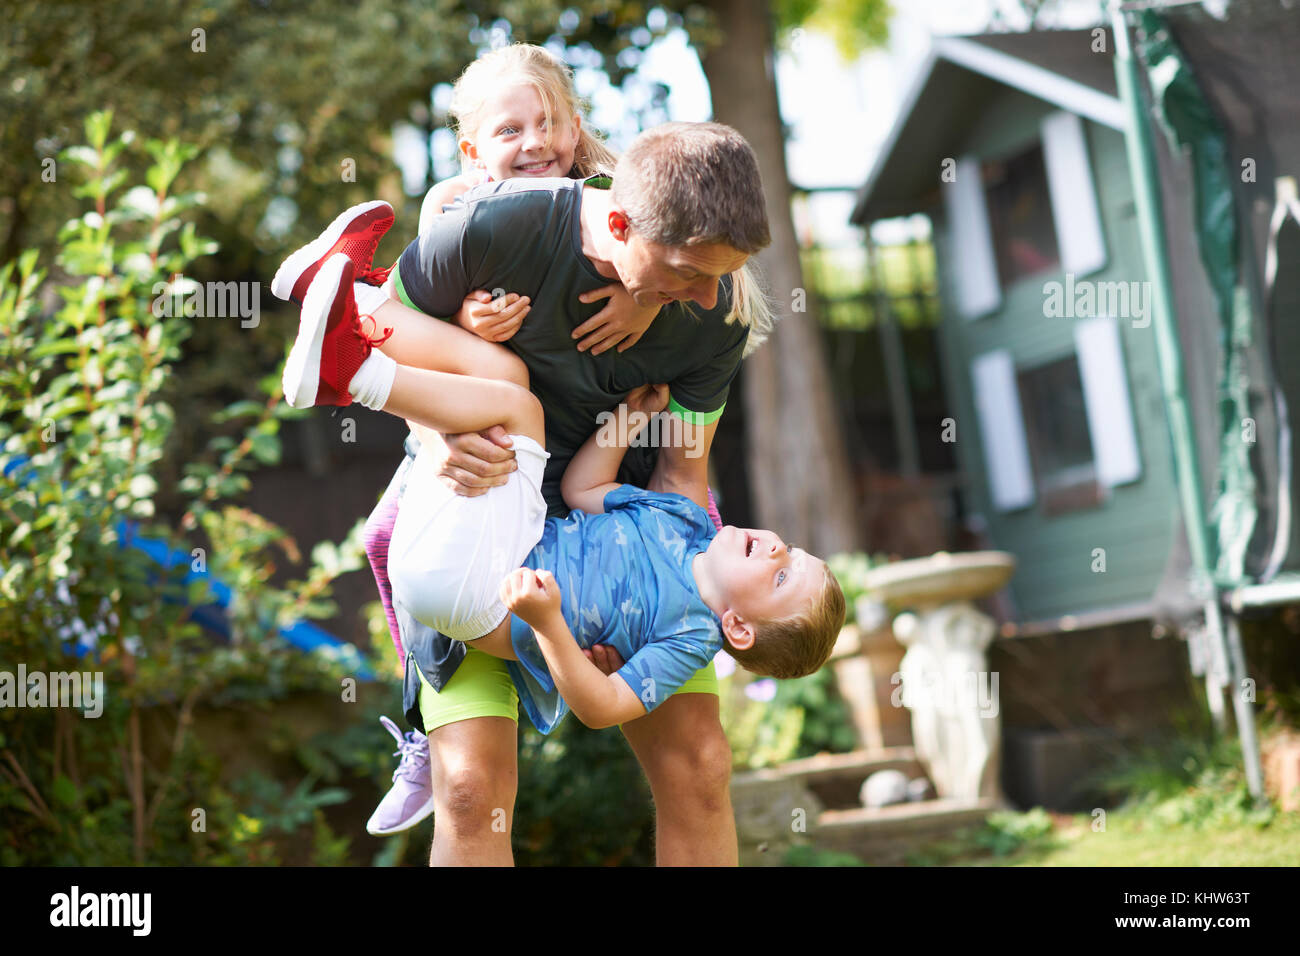 Family playfighting in garden - Stock Image